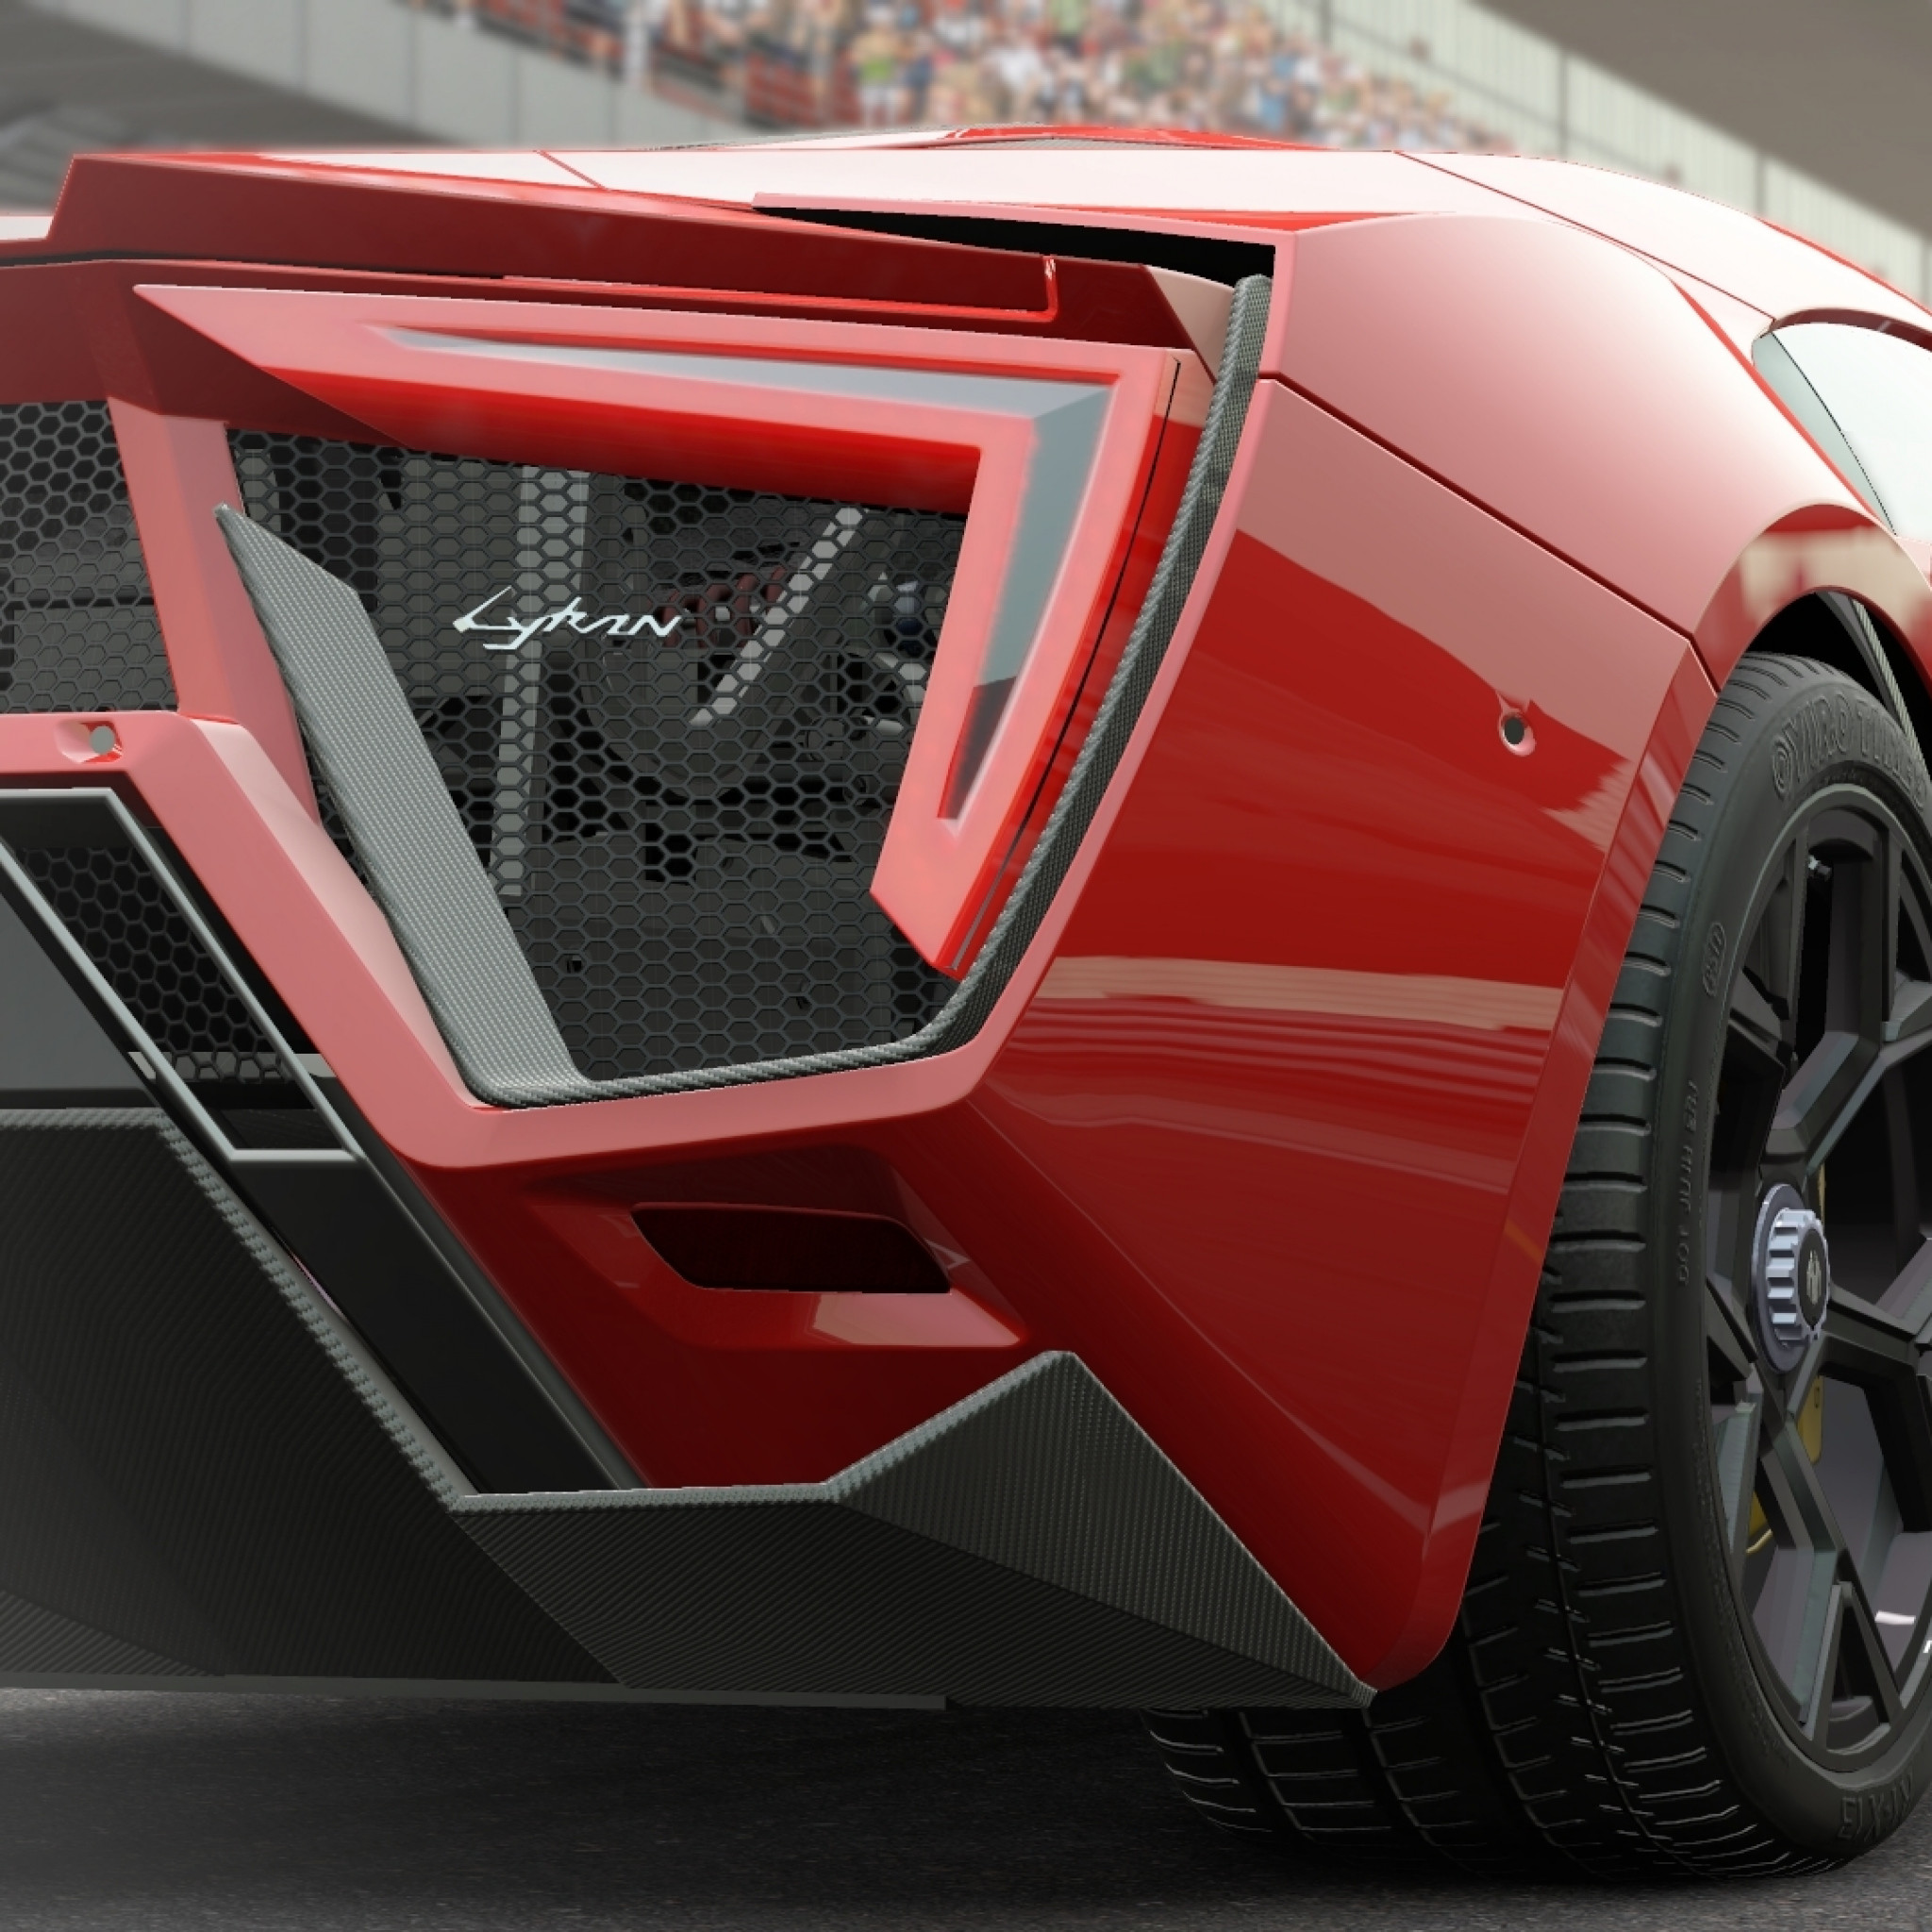 2048x2048 Preview wallpaper project cars, lykan hypersport, hypersport